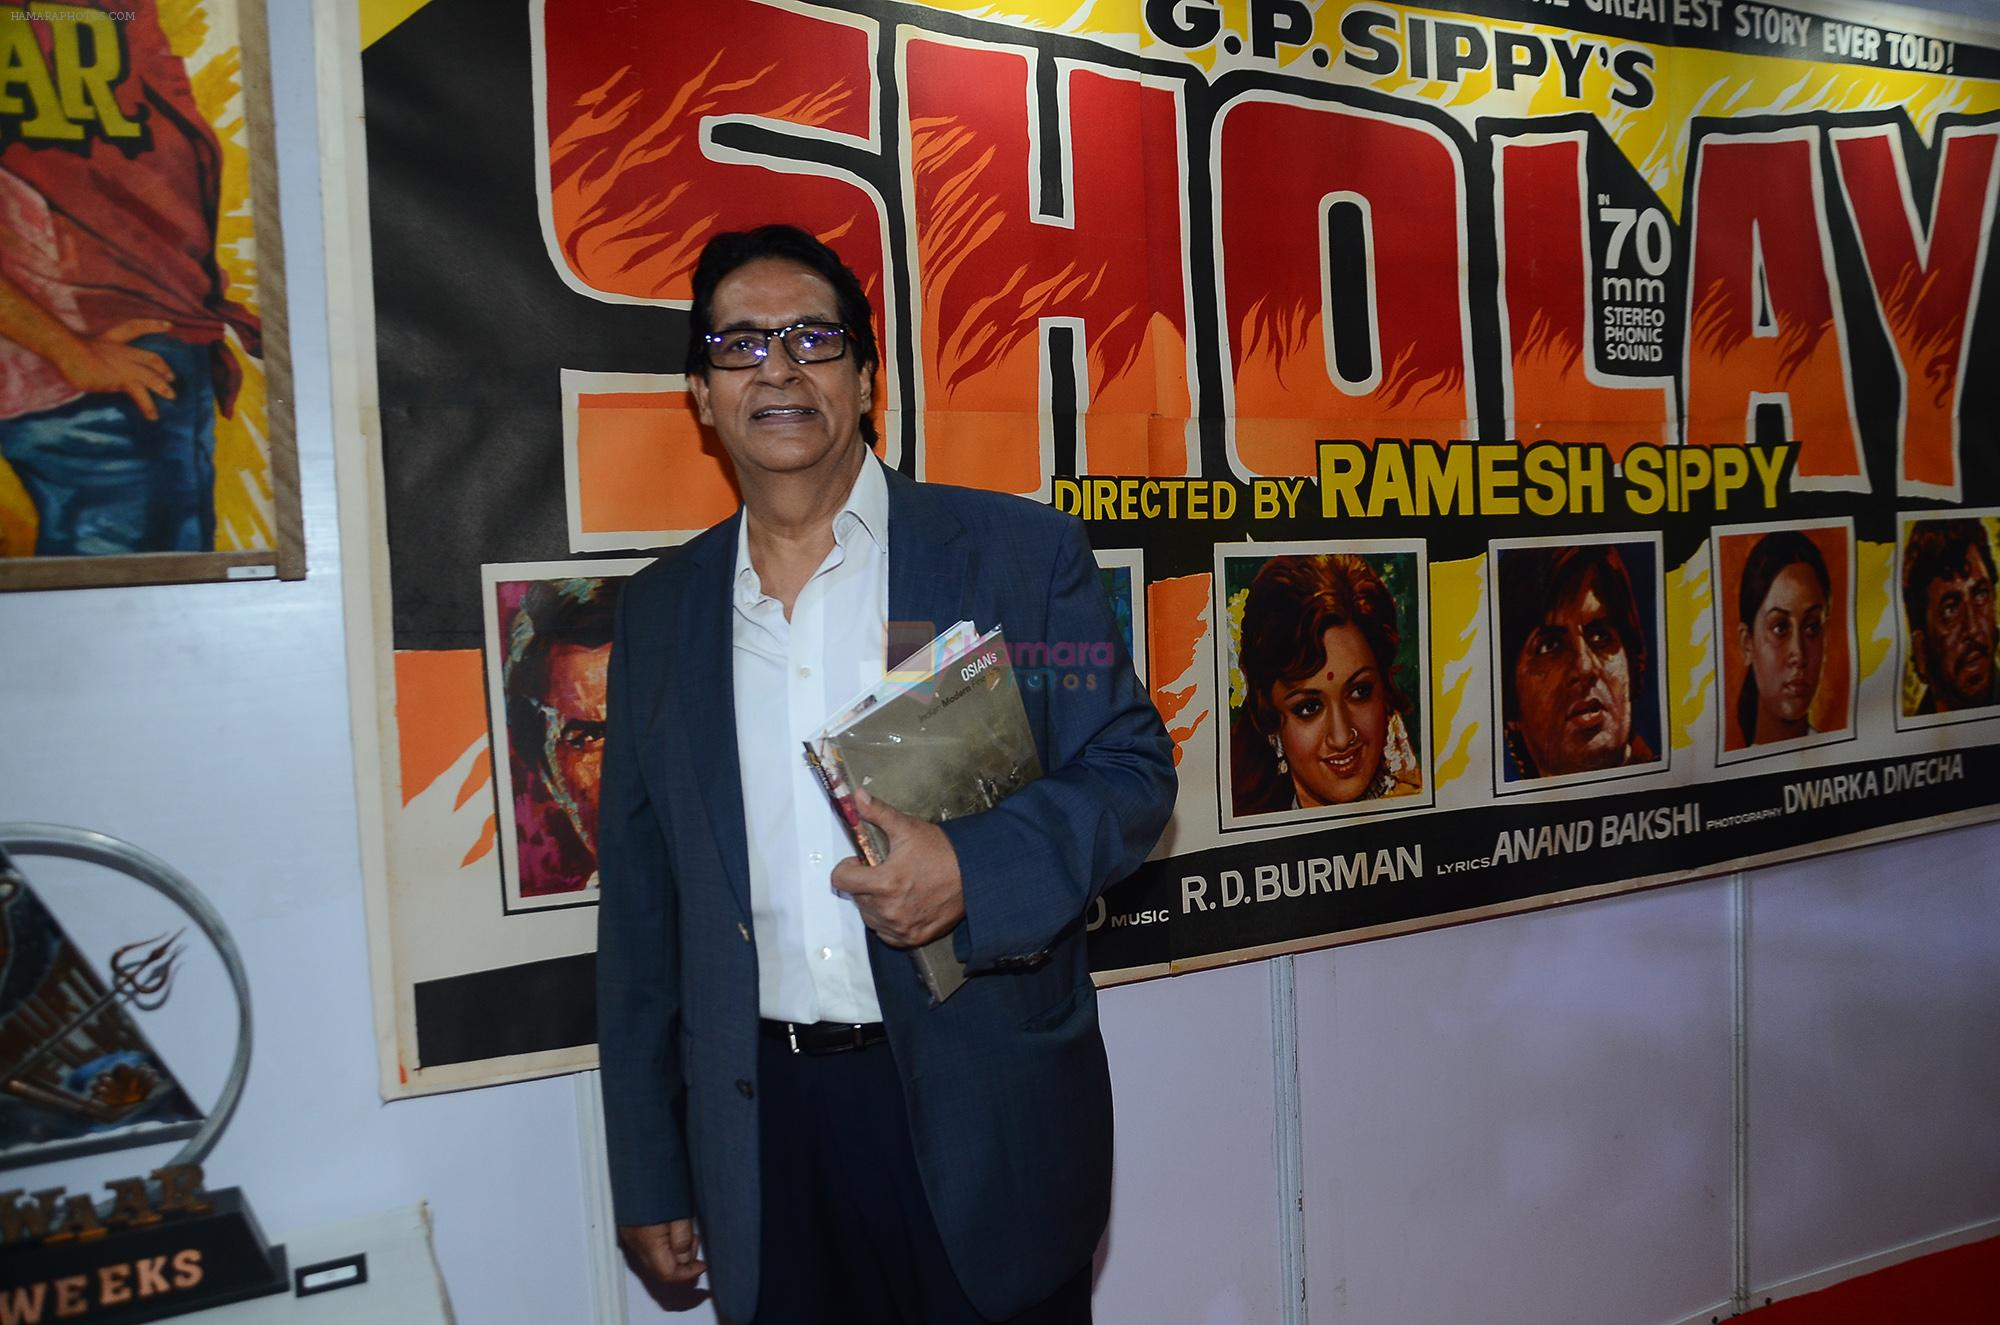 Ajitabh Bachchan at the opening preview of Osian's The Greatest Indian Show on Earth 2 - Vintage Film Memorabilia, Publicity Materials & Arts Auction